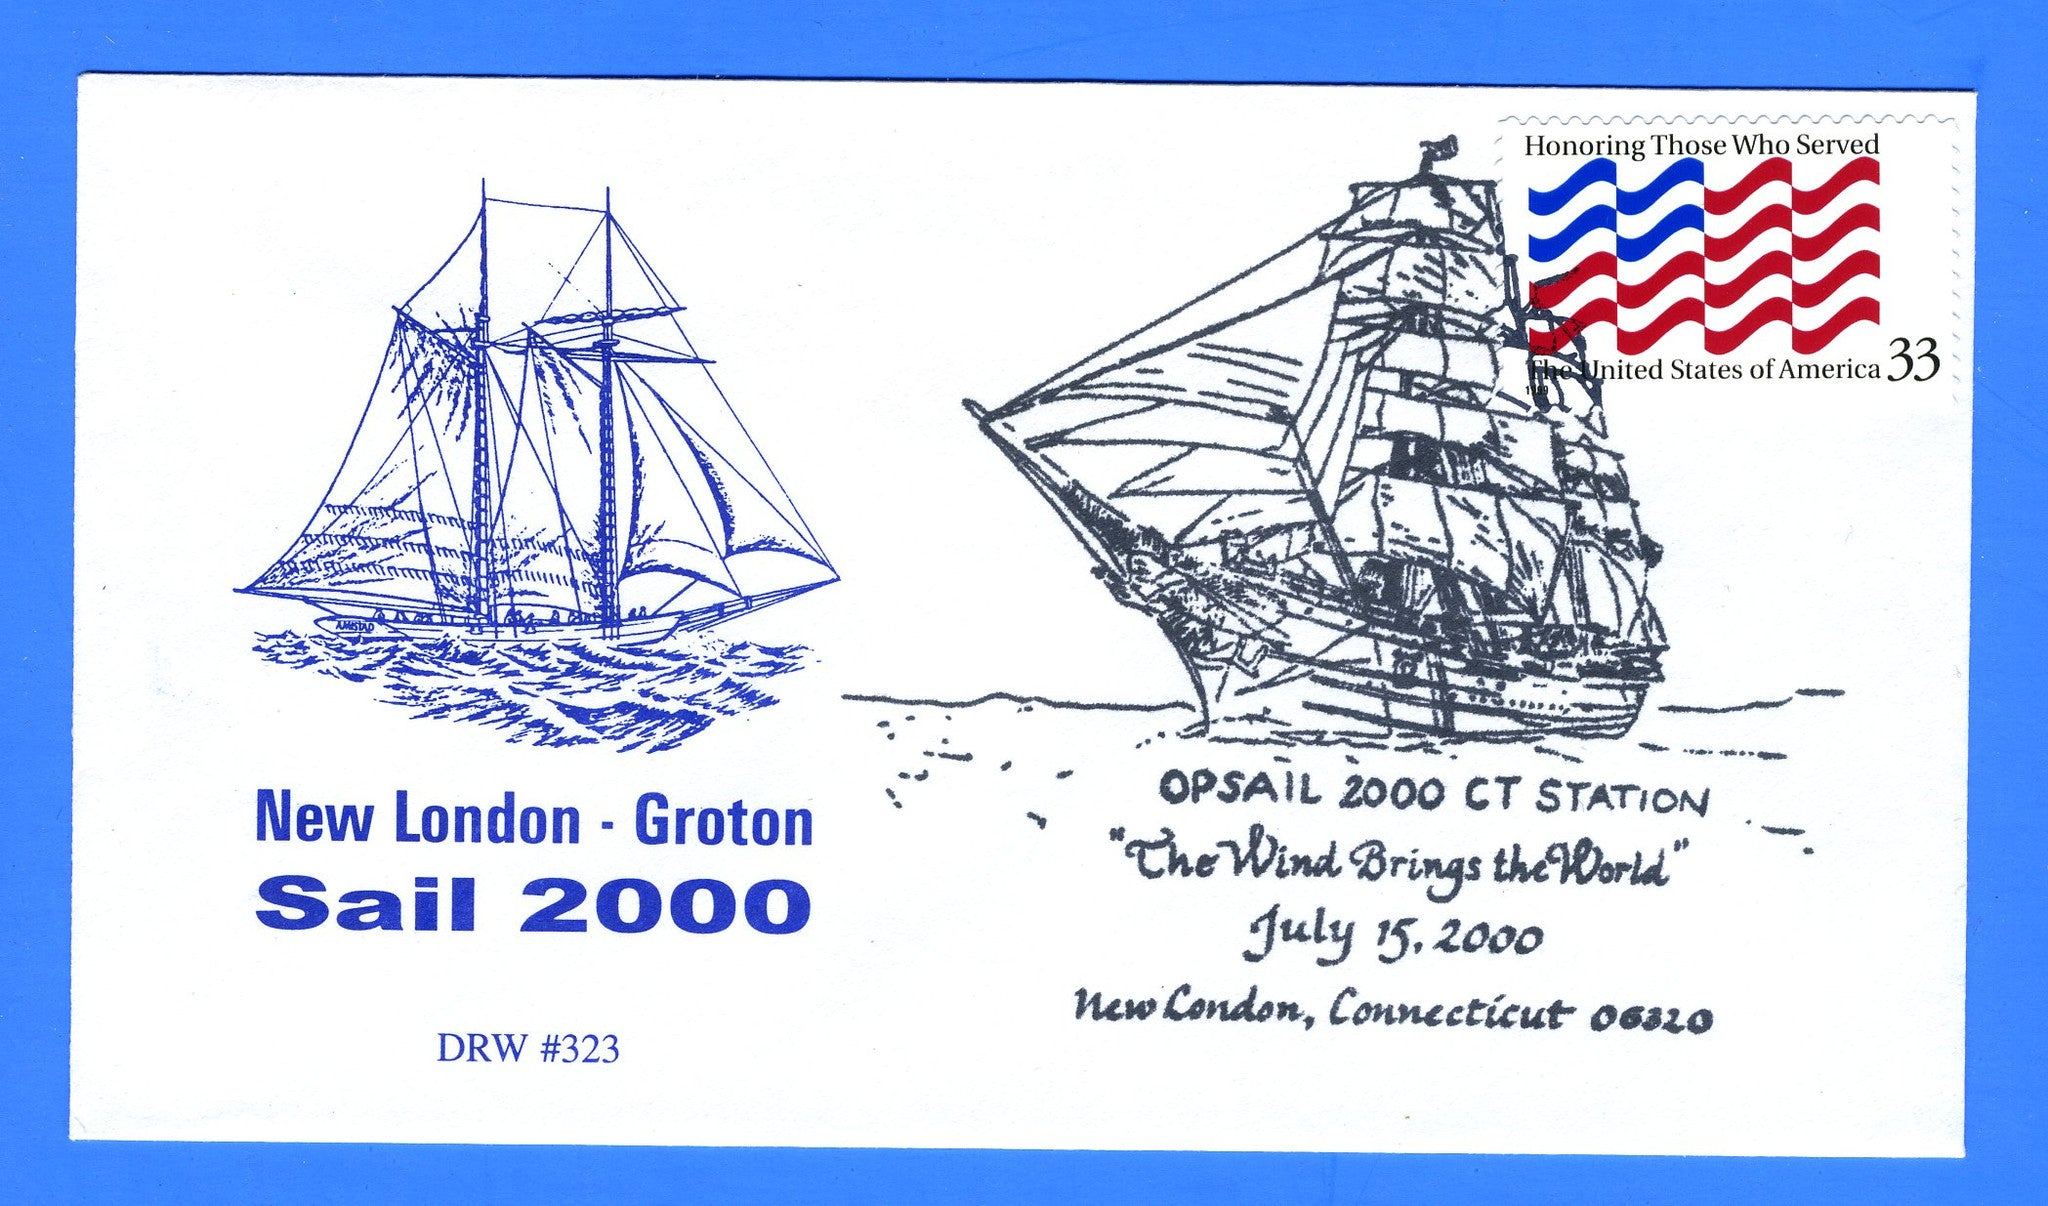 OpSail (Operation Sail 2000) July 15, 2000 - DRW 323